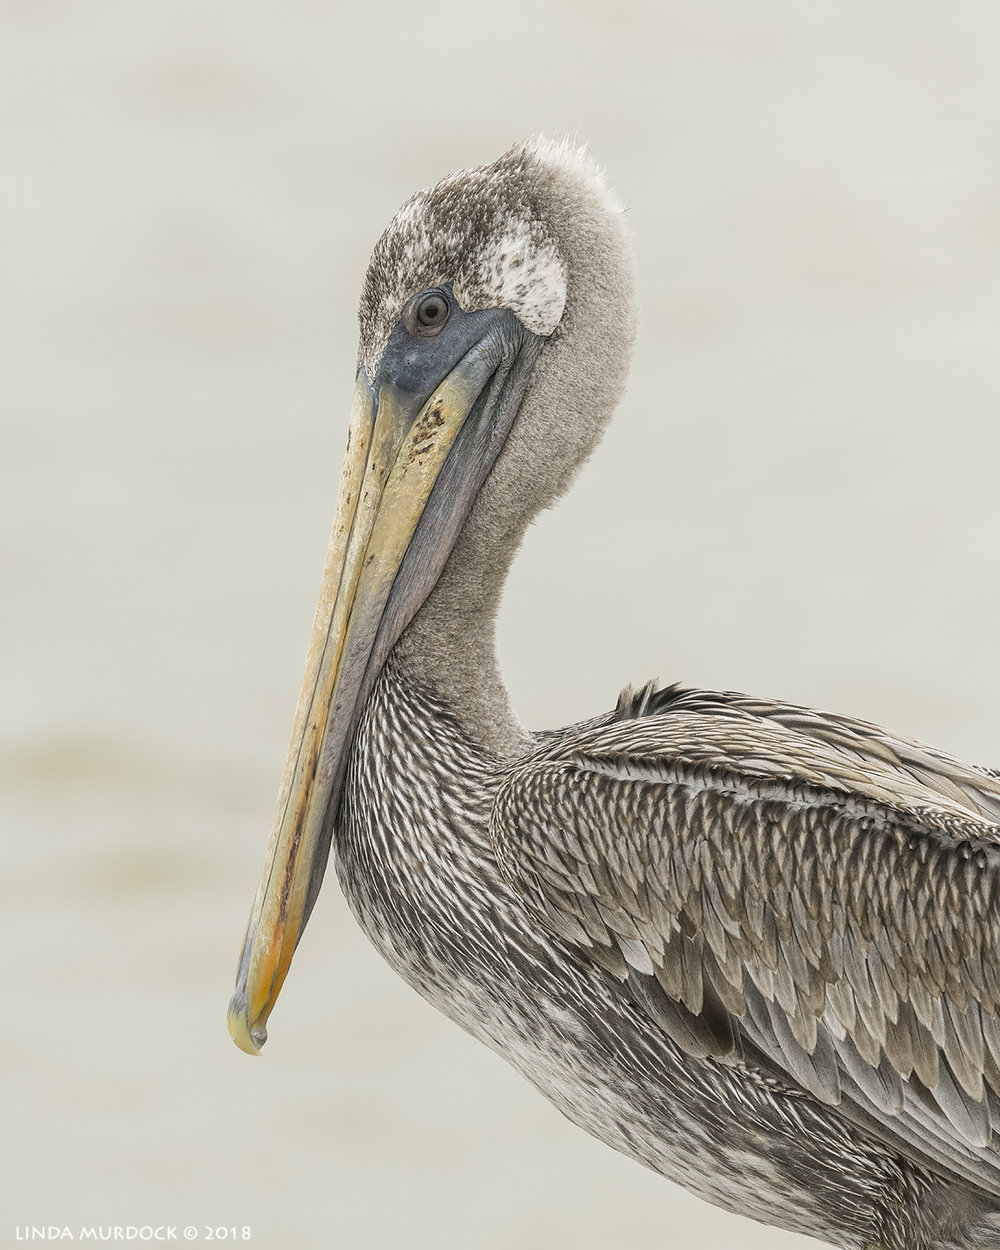 Young Brown Pelican portrait Nikon D850 with NIKKOR 300mm f/4E PF ED VR ~ 1/2500 sec f/7.1 ISO 1600; hand-held